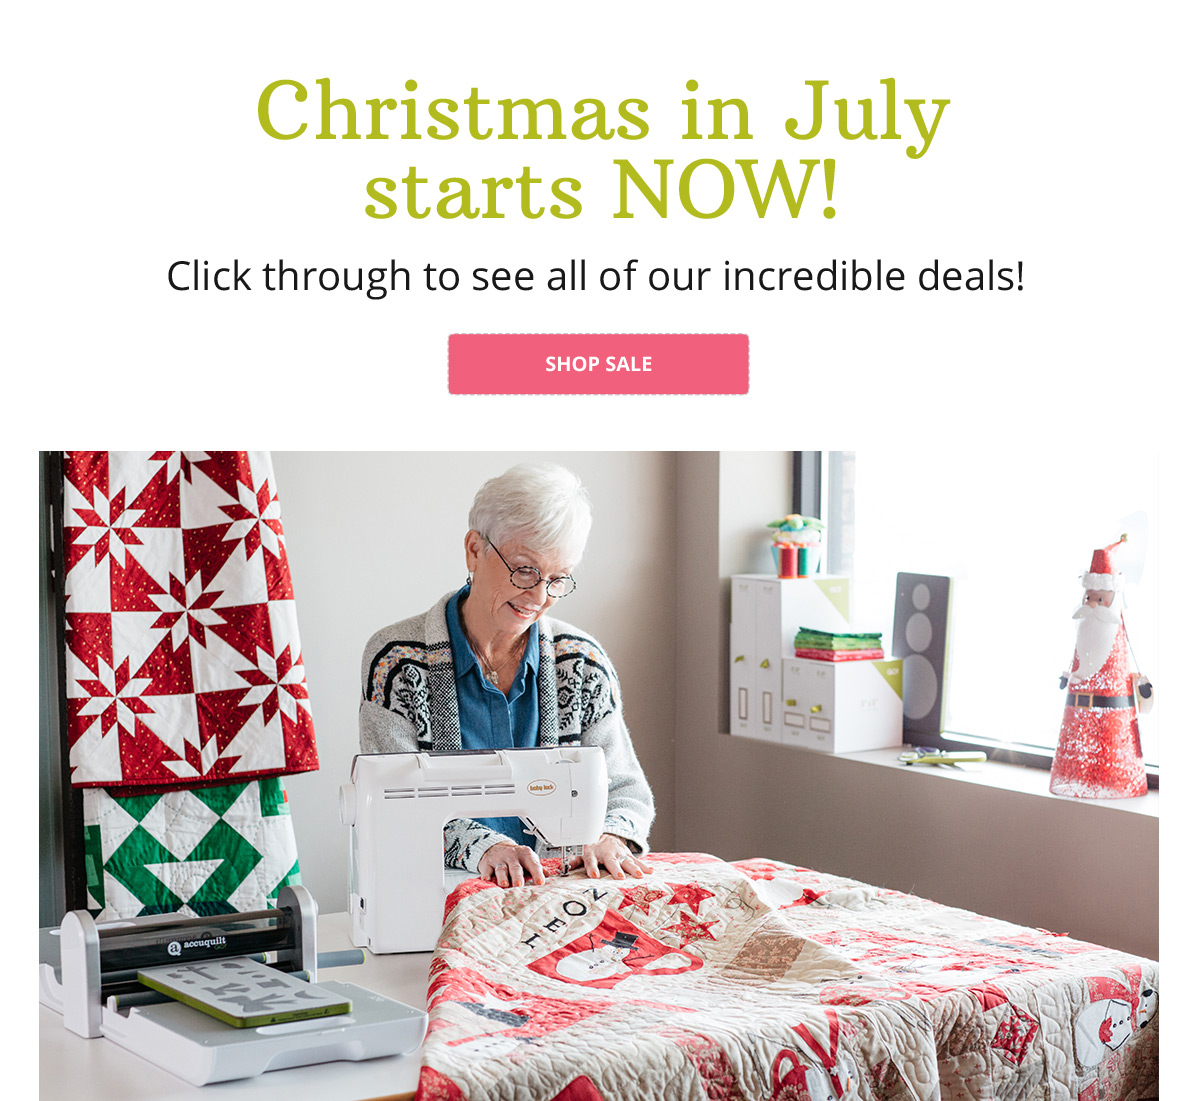 Christmas in July starts NOW!